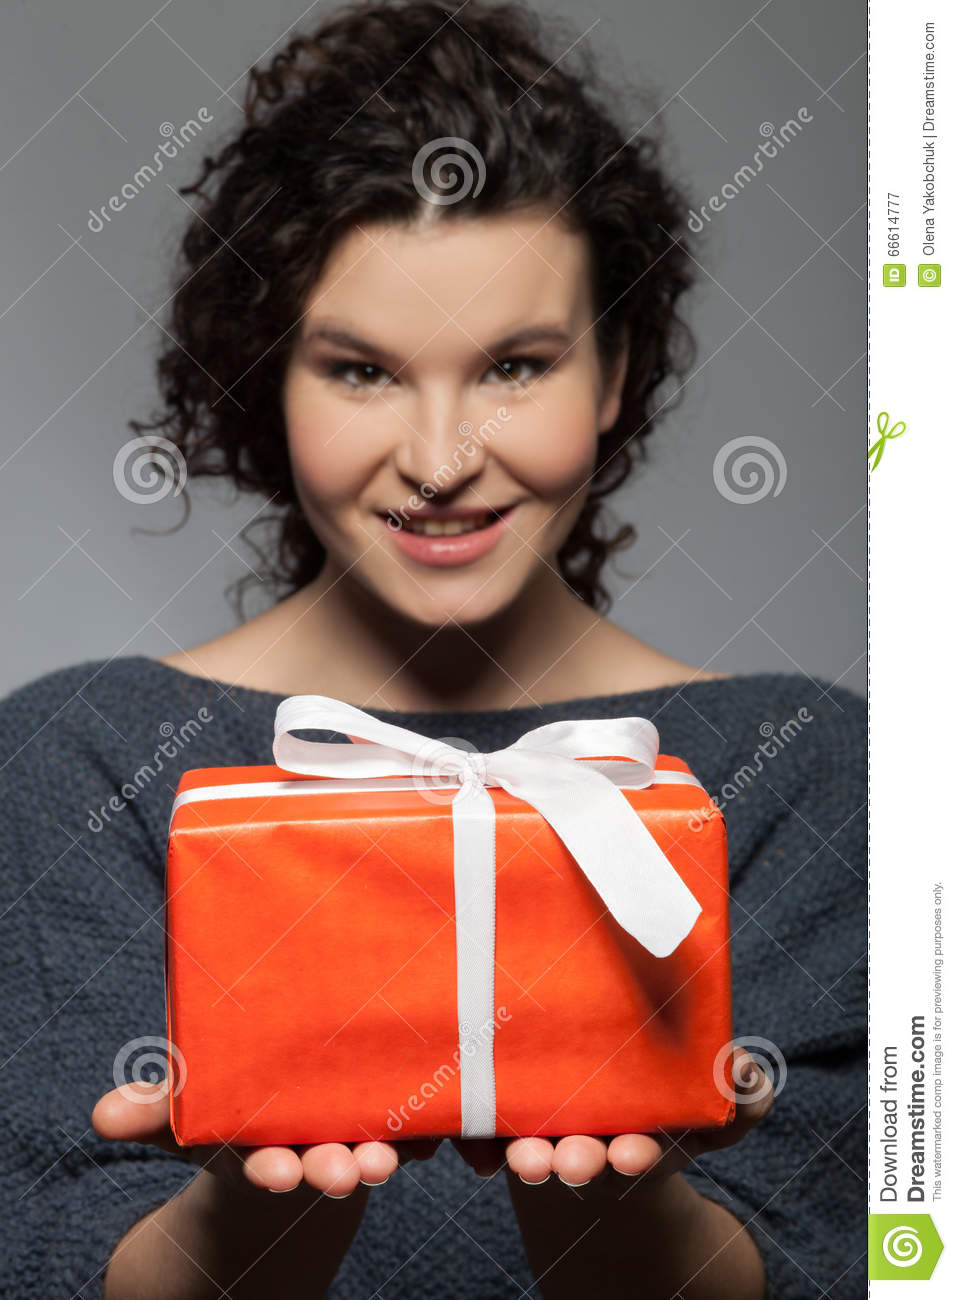 Cheerful young girl is preparing <b>pretty gift</b> - cheerful-young-girl-preparing-pretty-gift-i-have-present-you-portrait-cute-woman-holding-box-giving-to-66614777